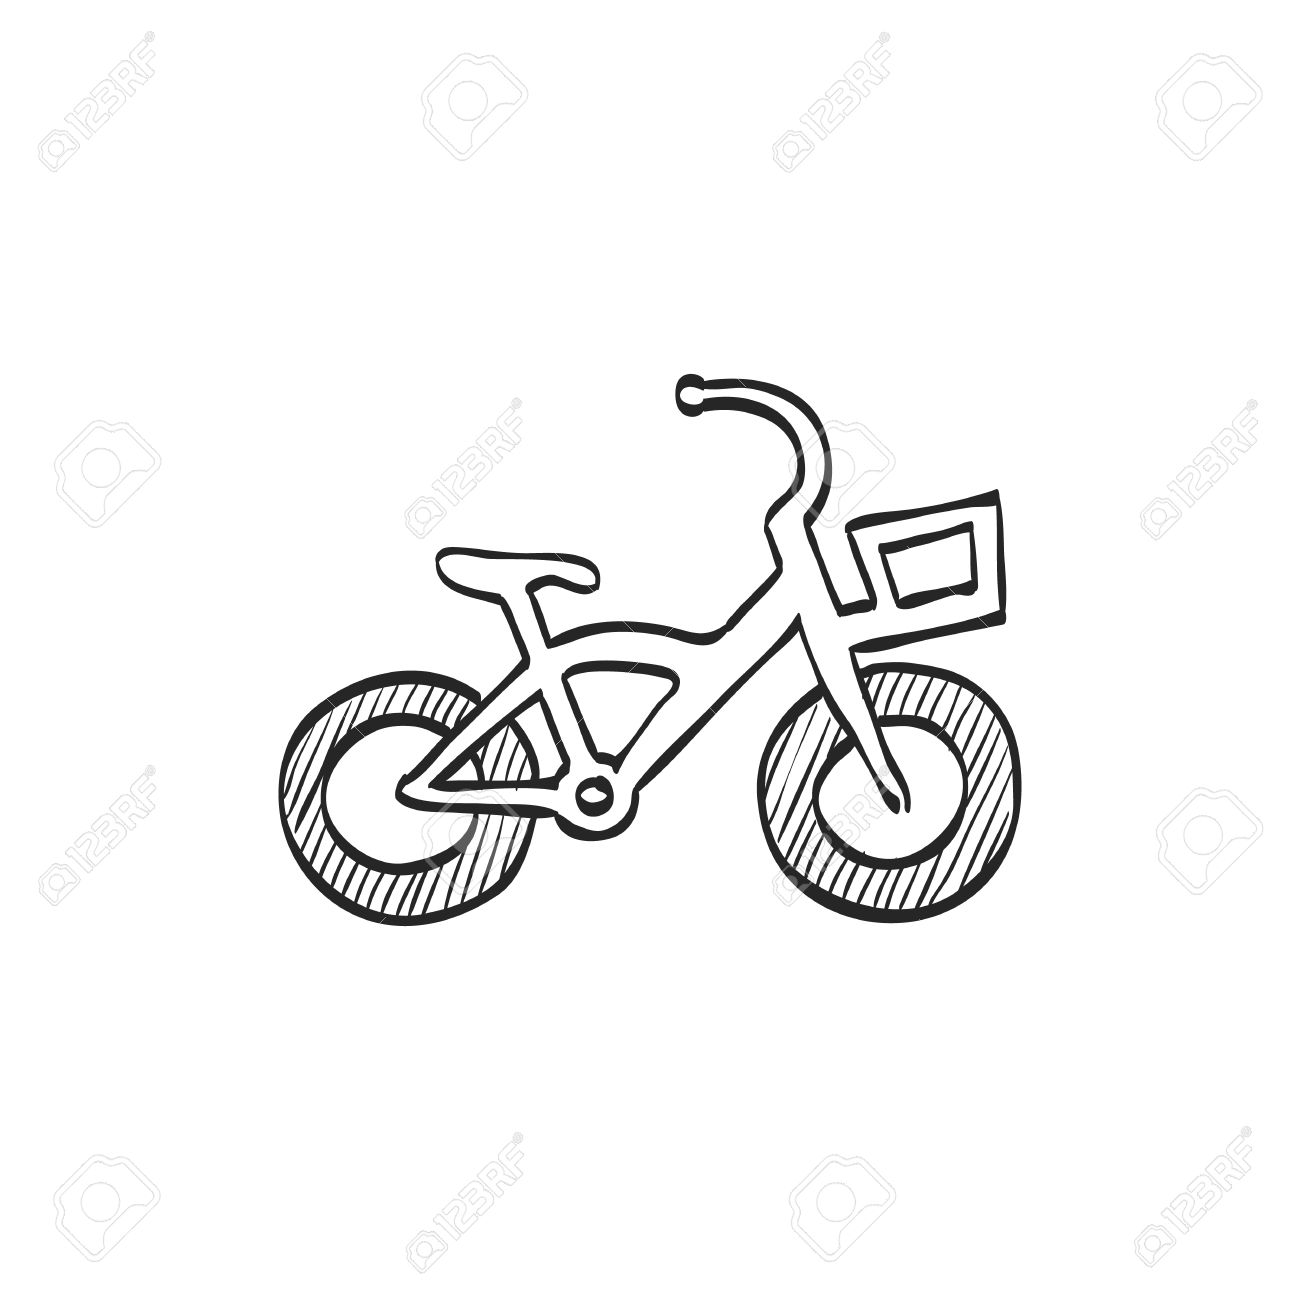 1300x1300 Kids Bicycle Icon In Doodle Sketch Lines. Playing Game Toy Royalty